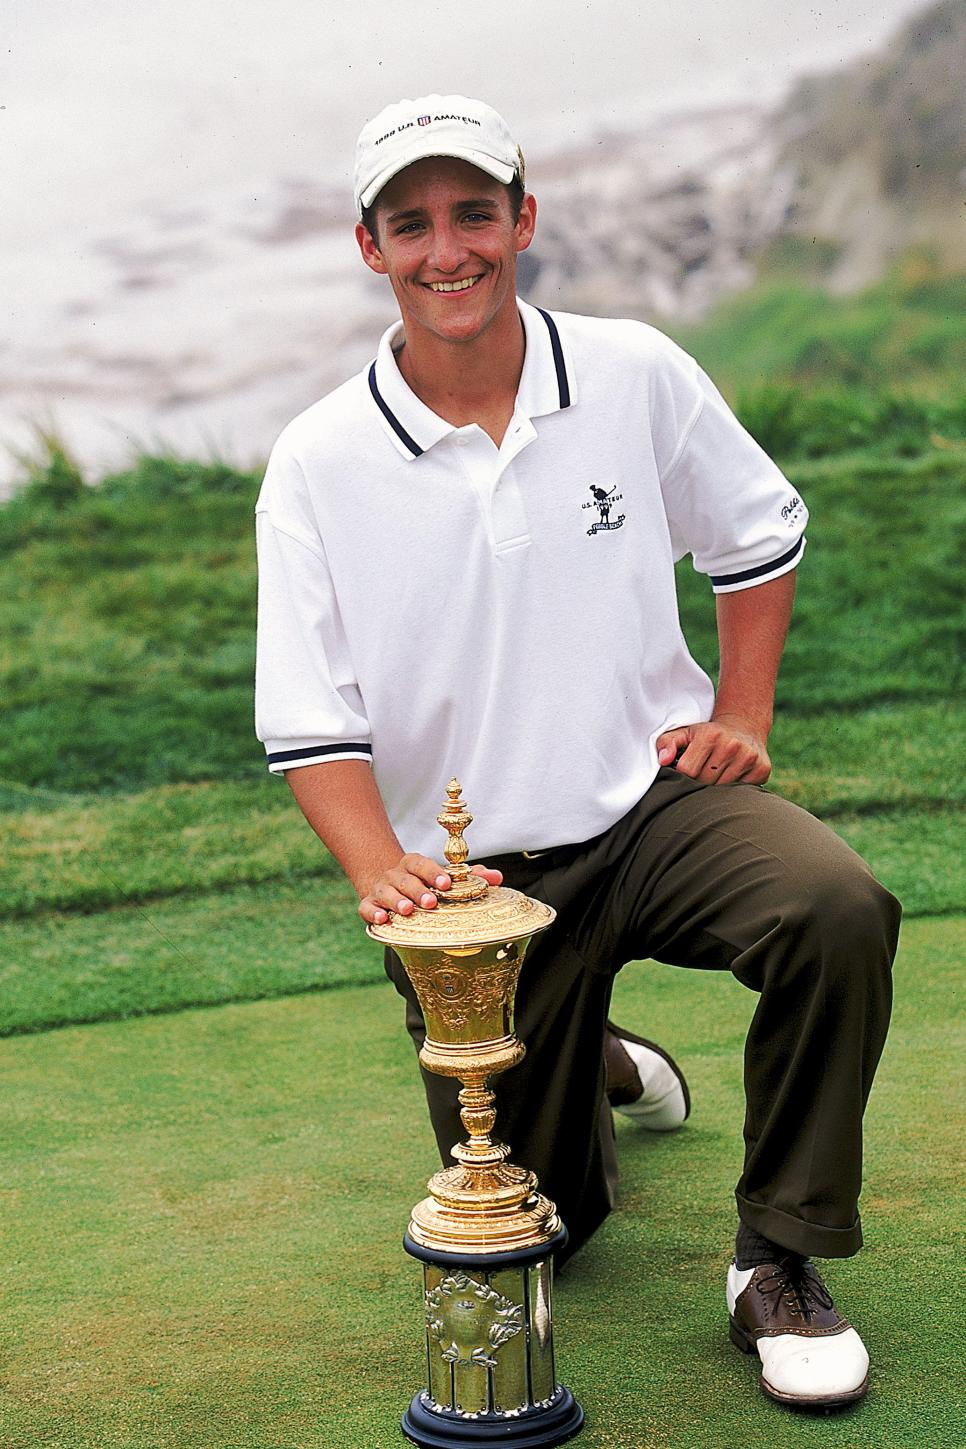 david-gossett-us-amateur-trophy-1999.jpg